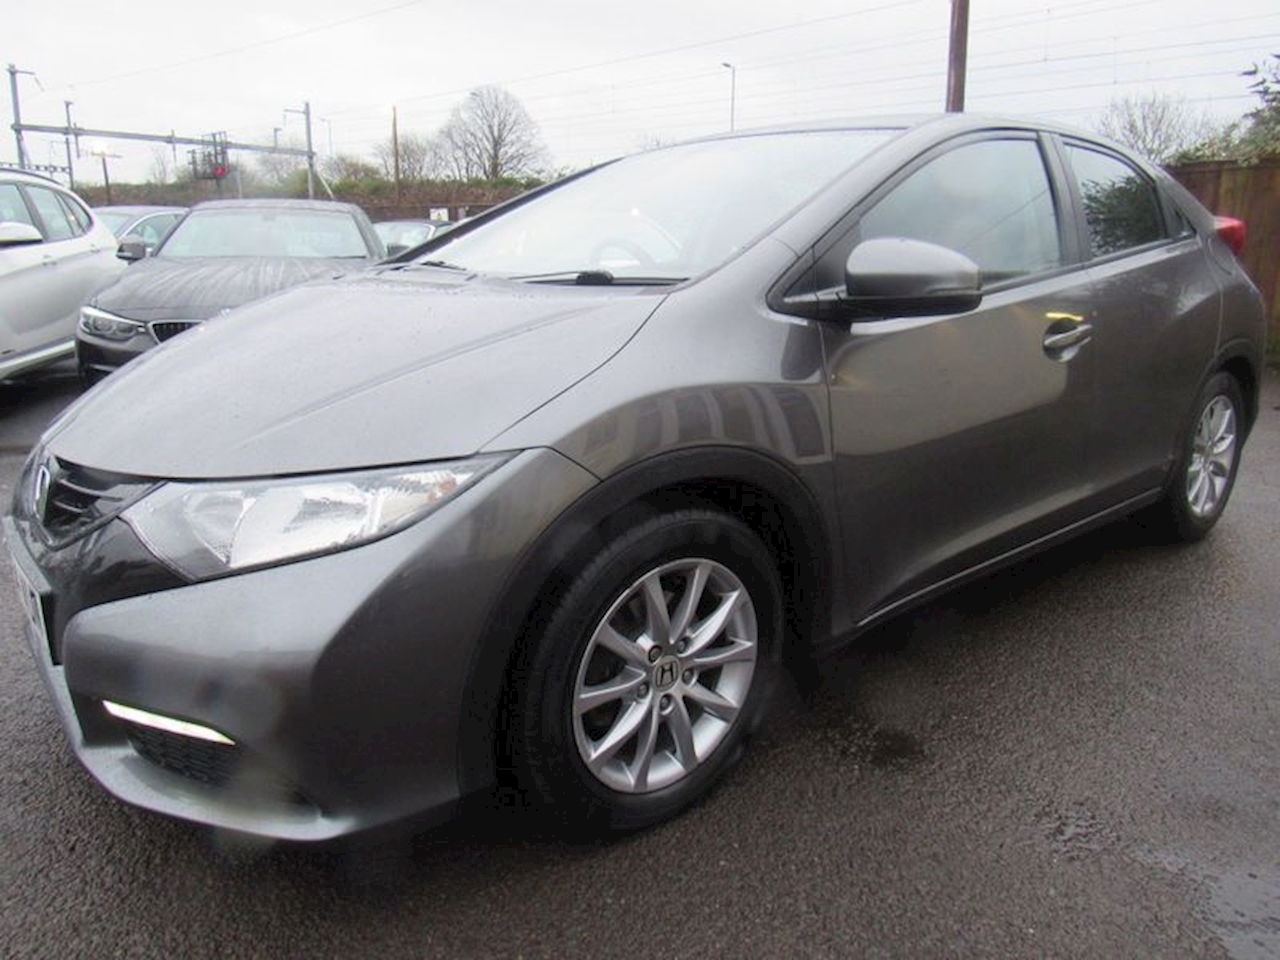 Honda Civic I-Vtec S Hatchback 1.8 Manual Petrol